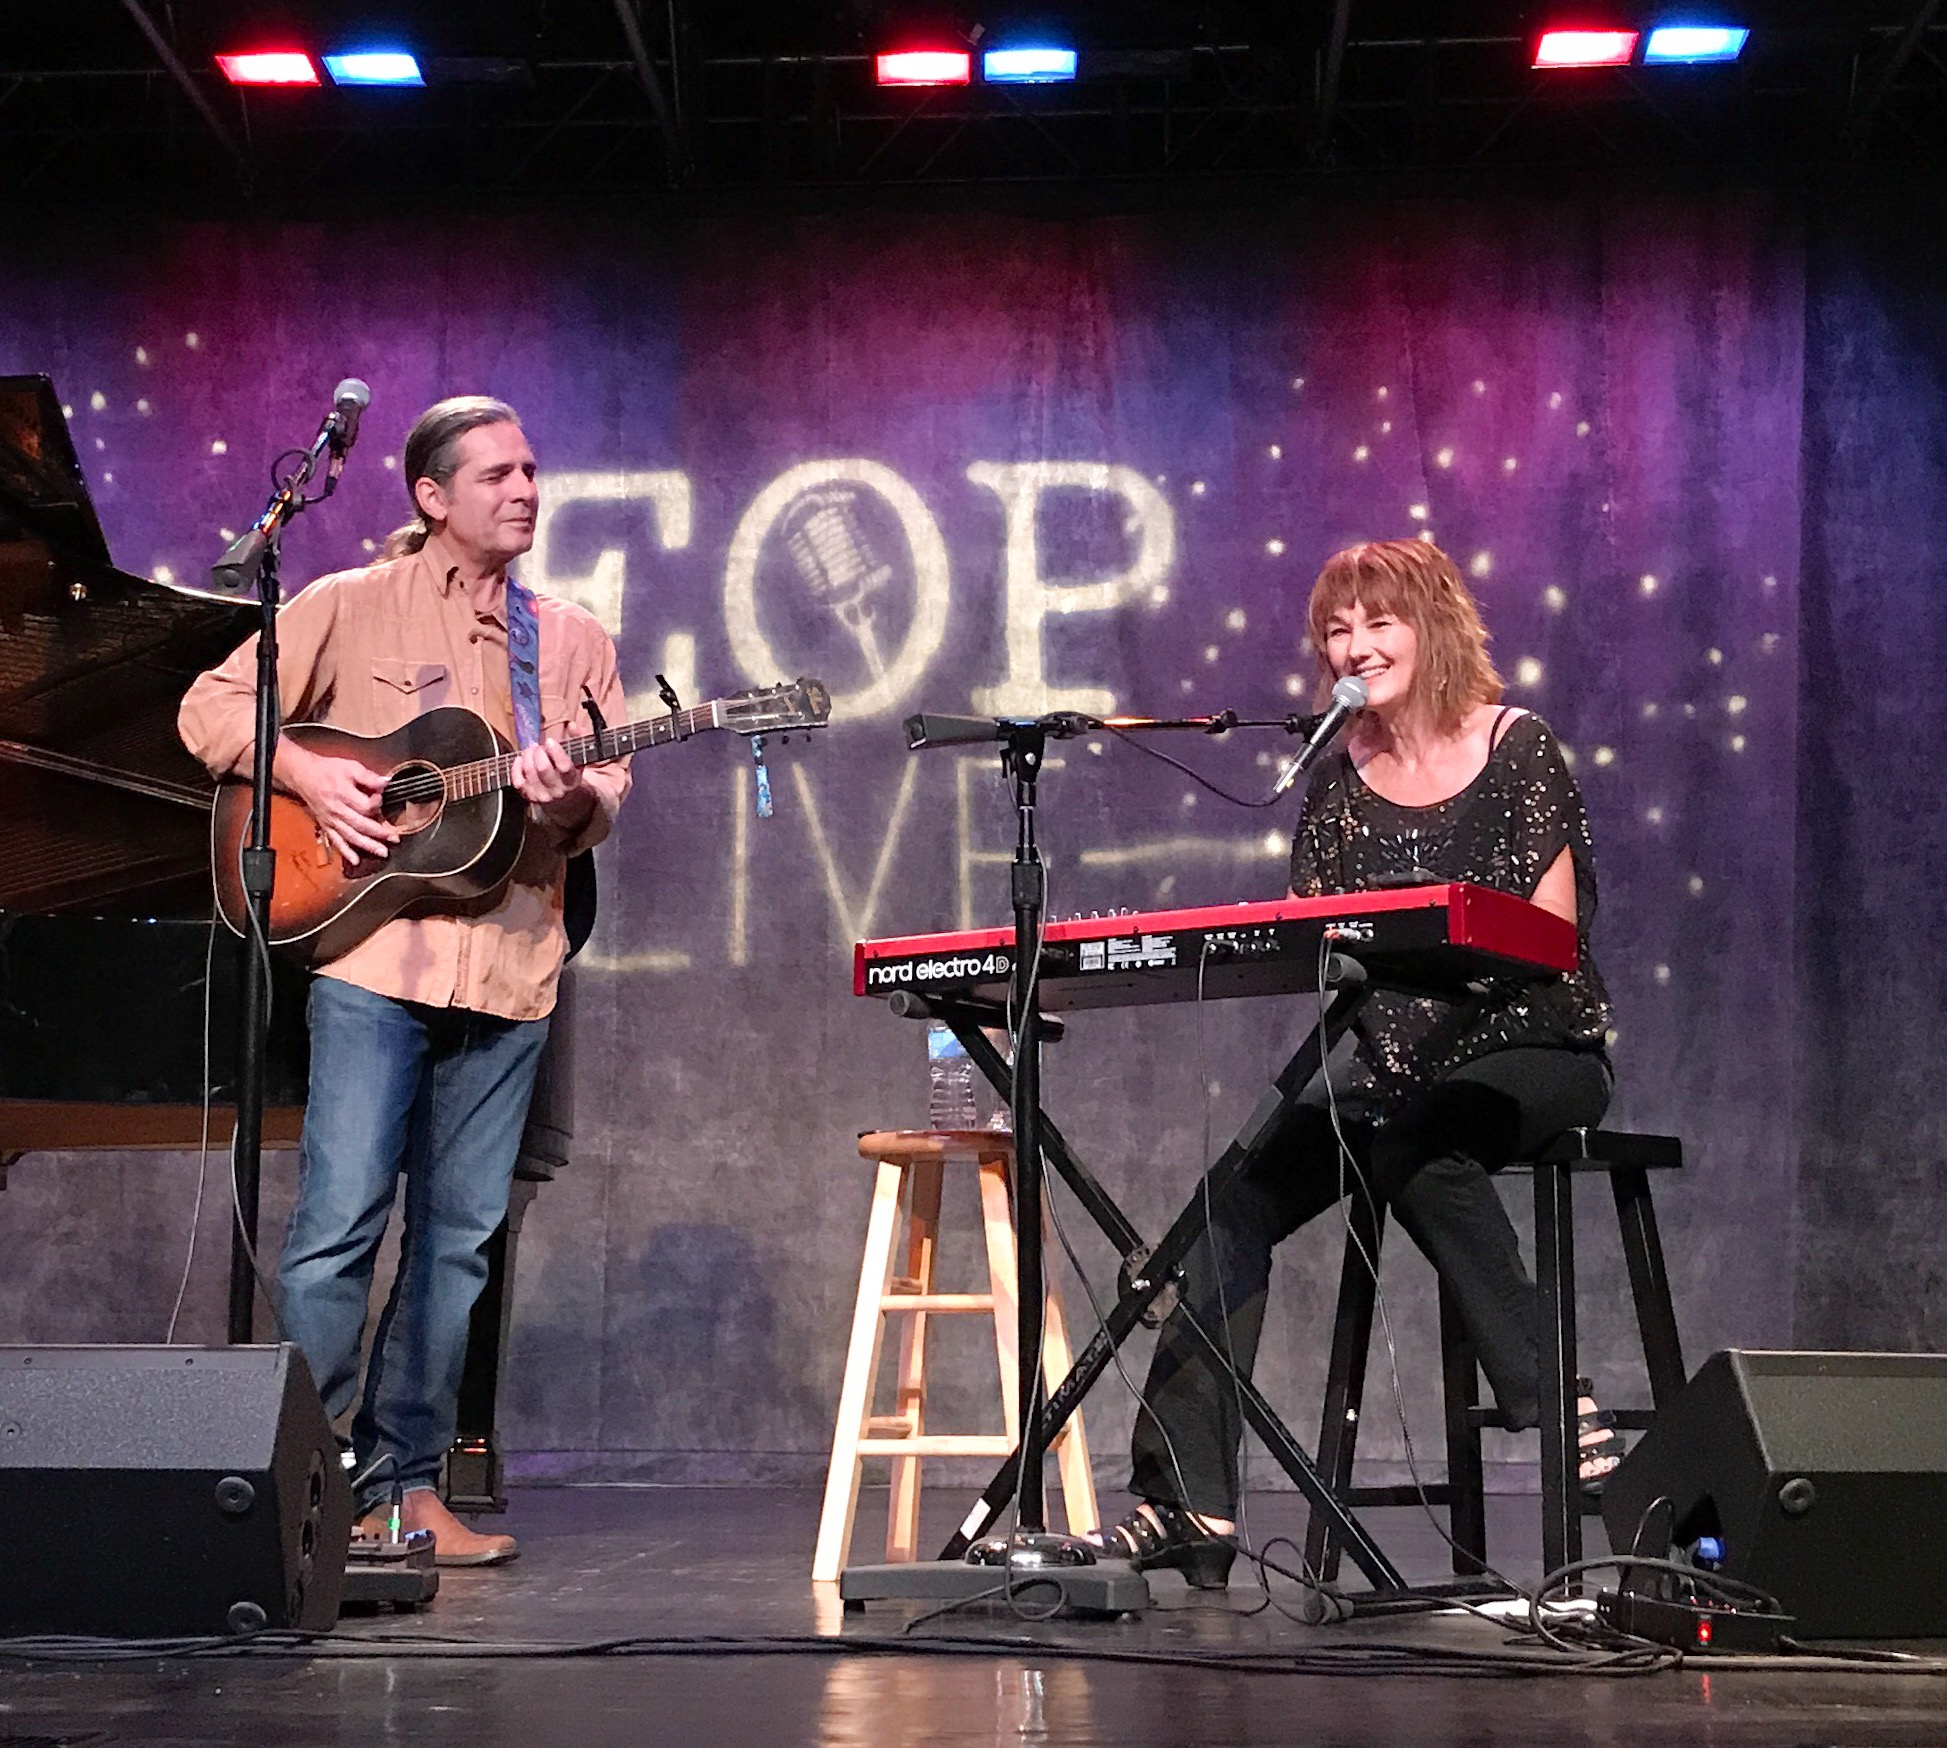 Chuck and Lari anniversary show at Red Clay Theater in Duluth GA April 2017